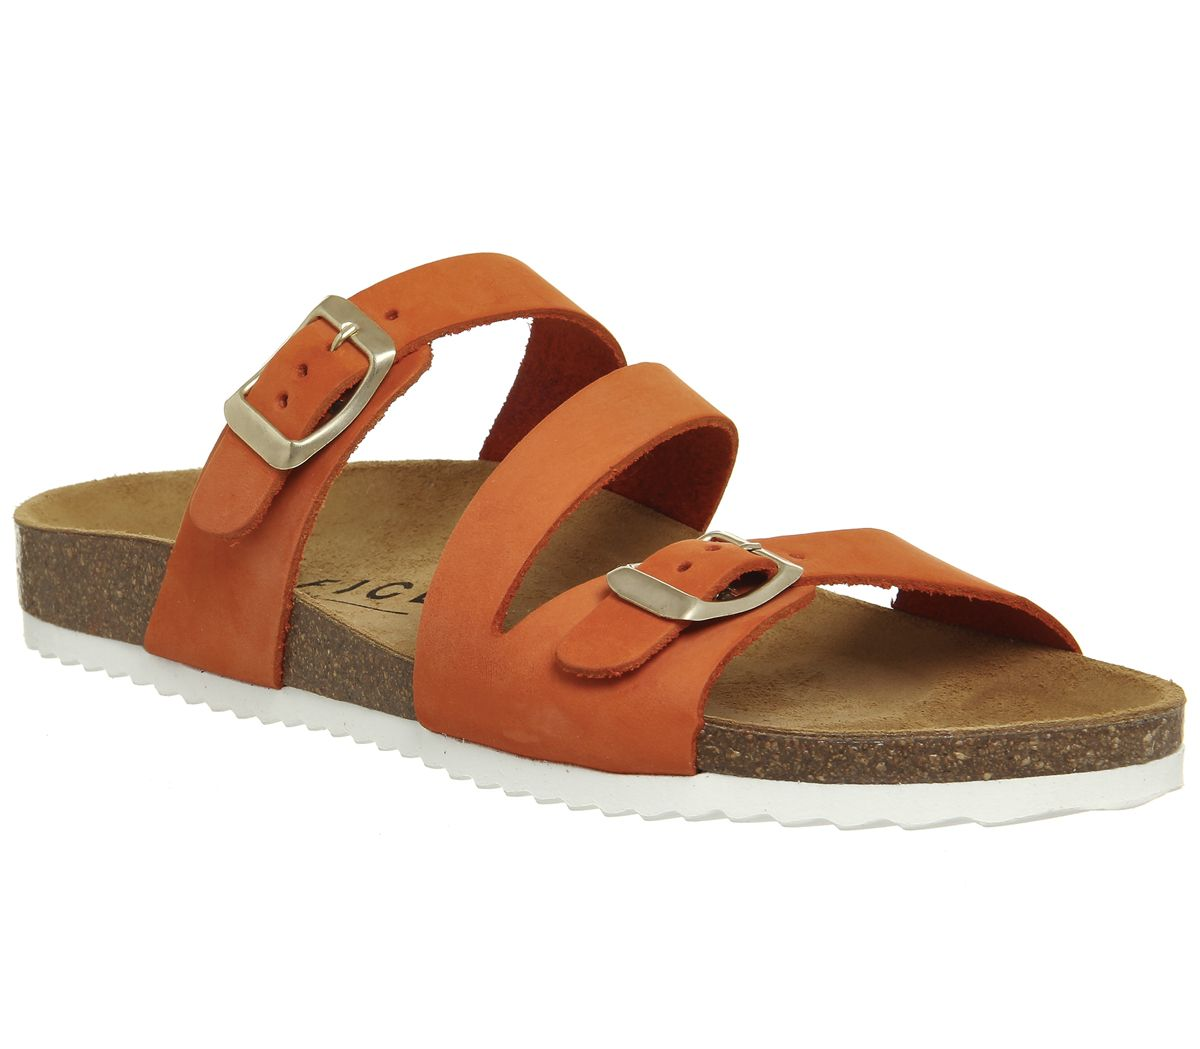 aedca0bb9c Office Bounty Cross Strap Footbed Sandals Orange Nubuck - Sandals